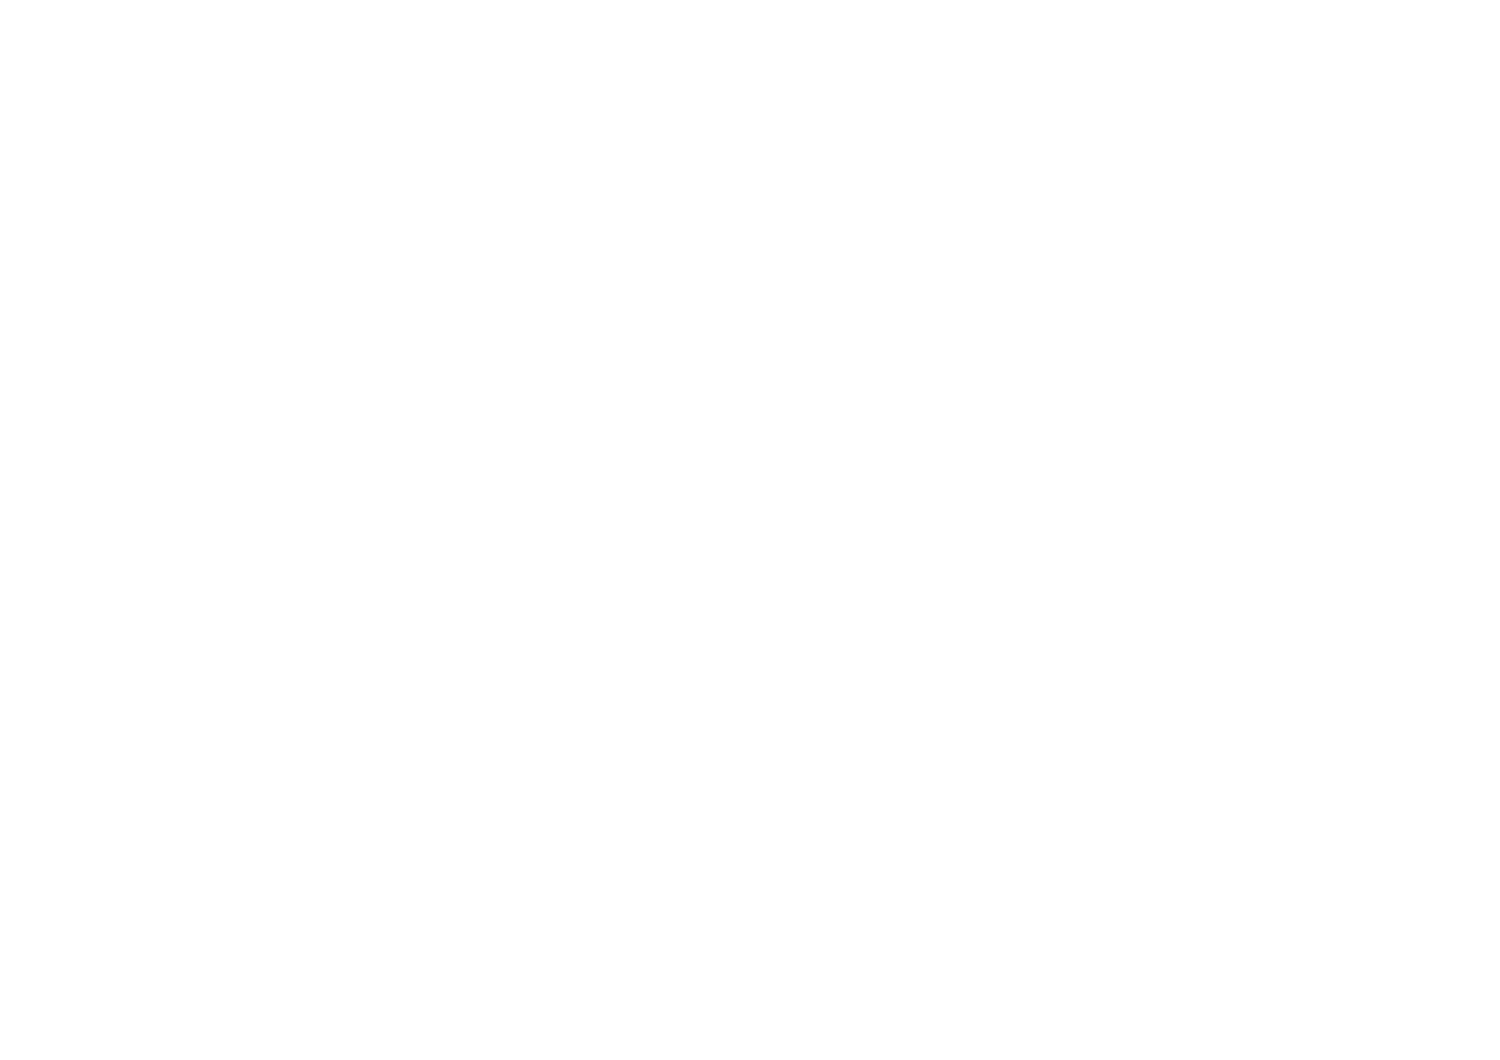 Embrace Artist Collective